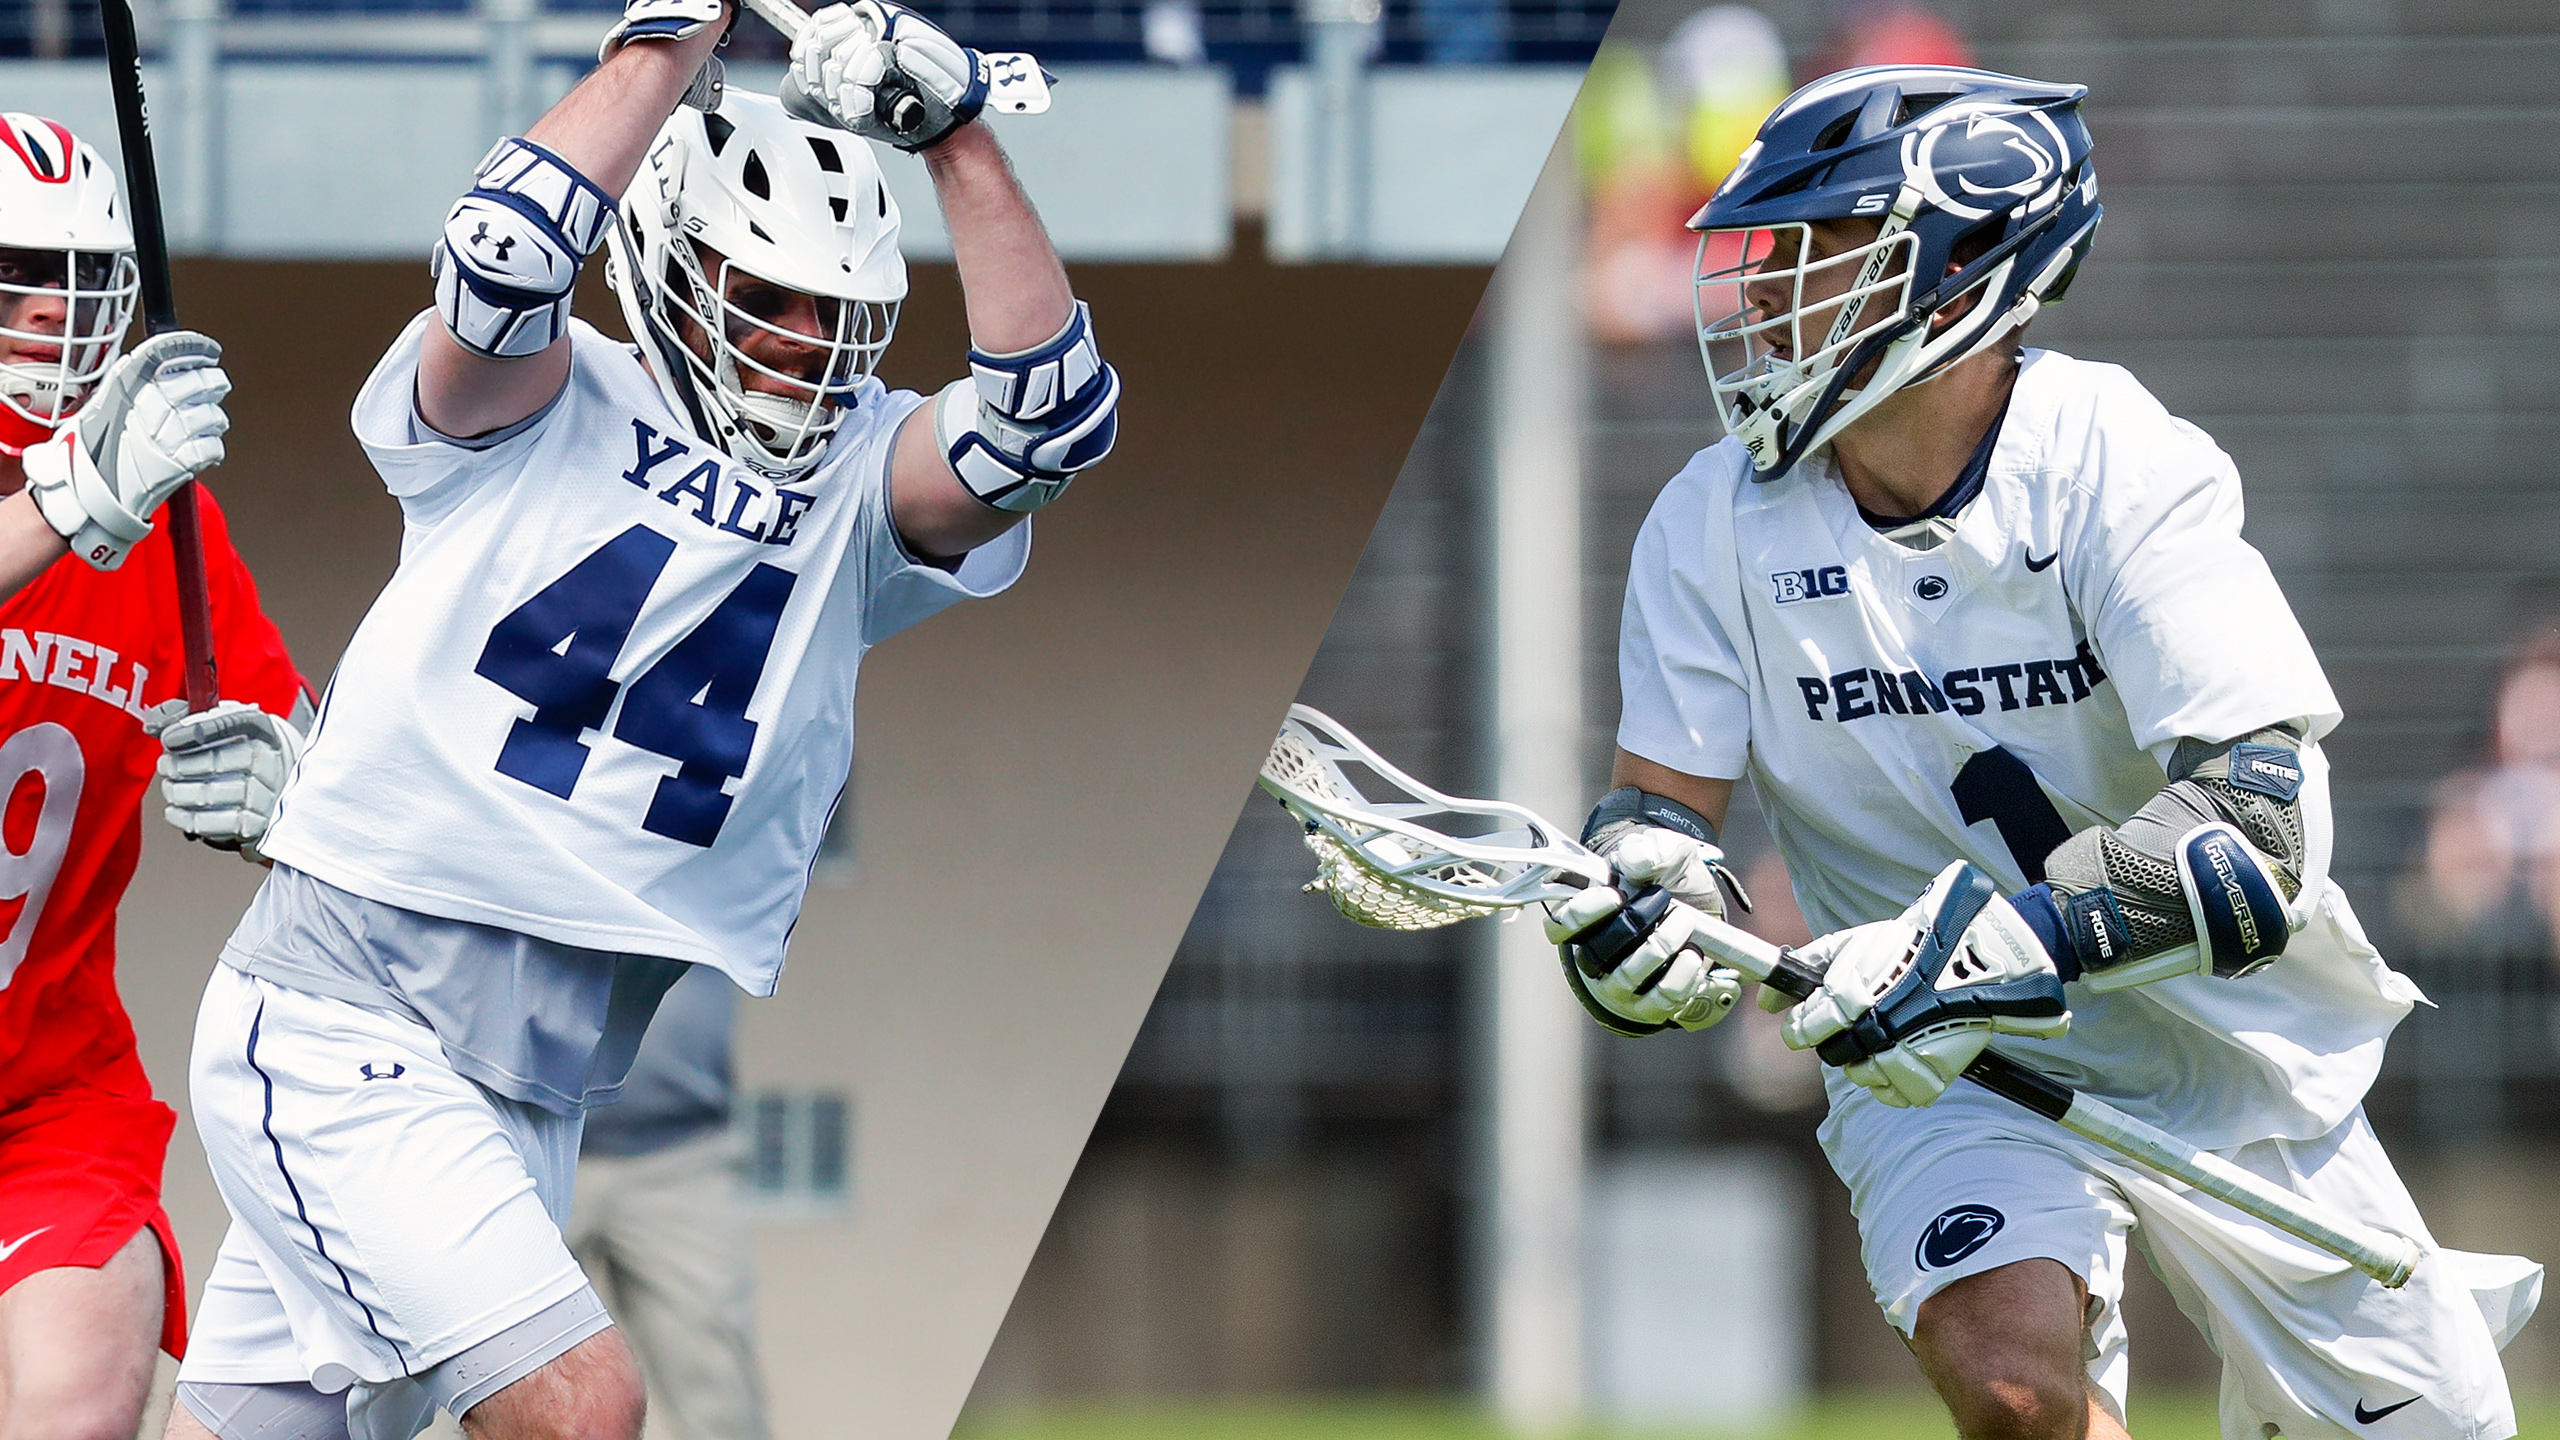 #5 Yale vs. #1 Penn State (Semifinal #2) (re-air)